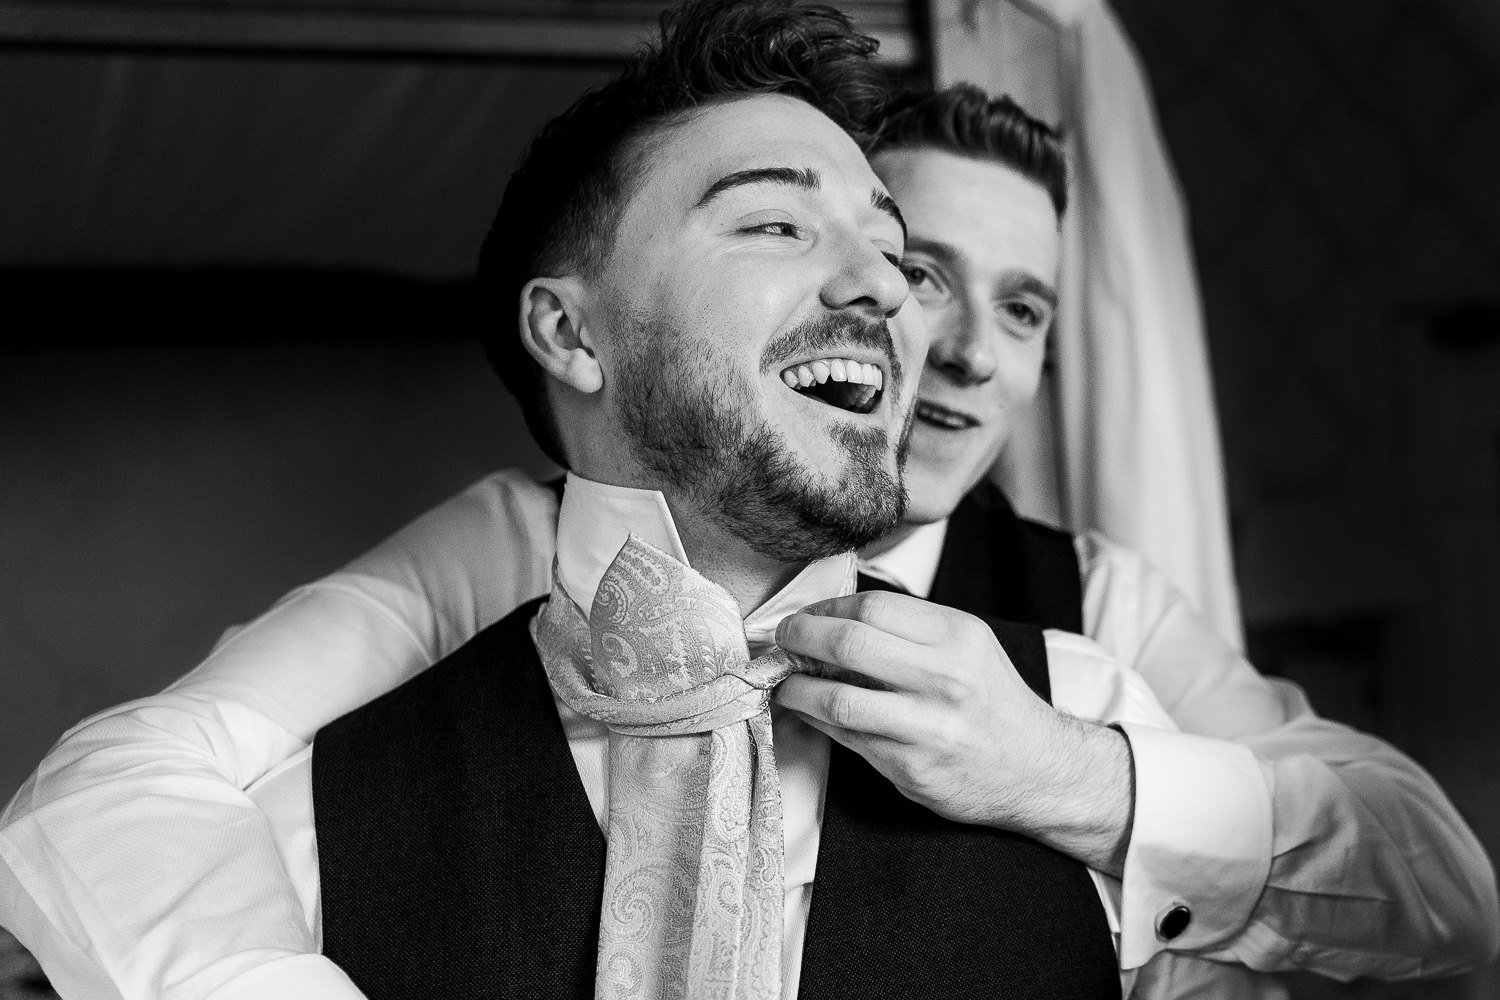 Groom doing tie for best man